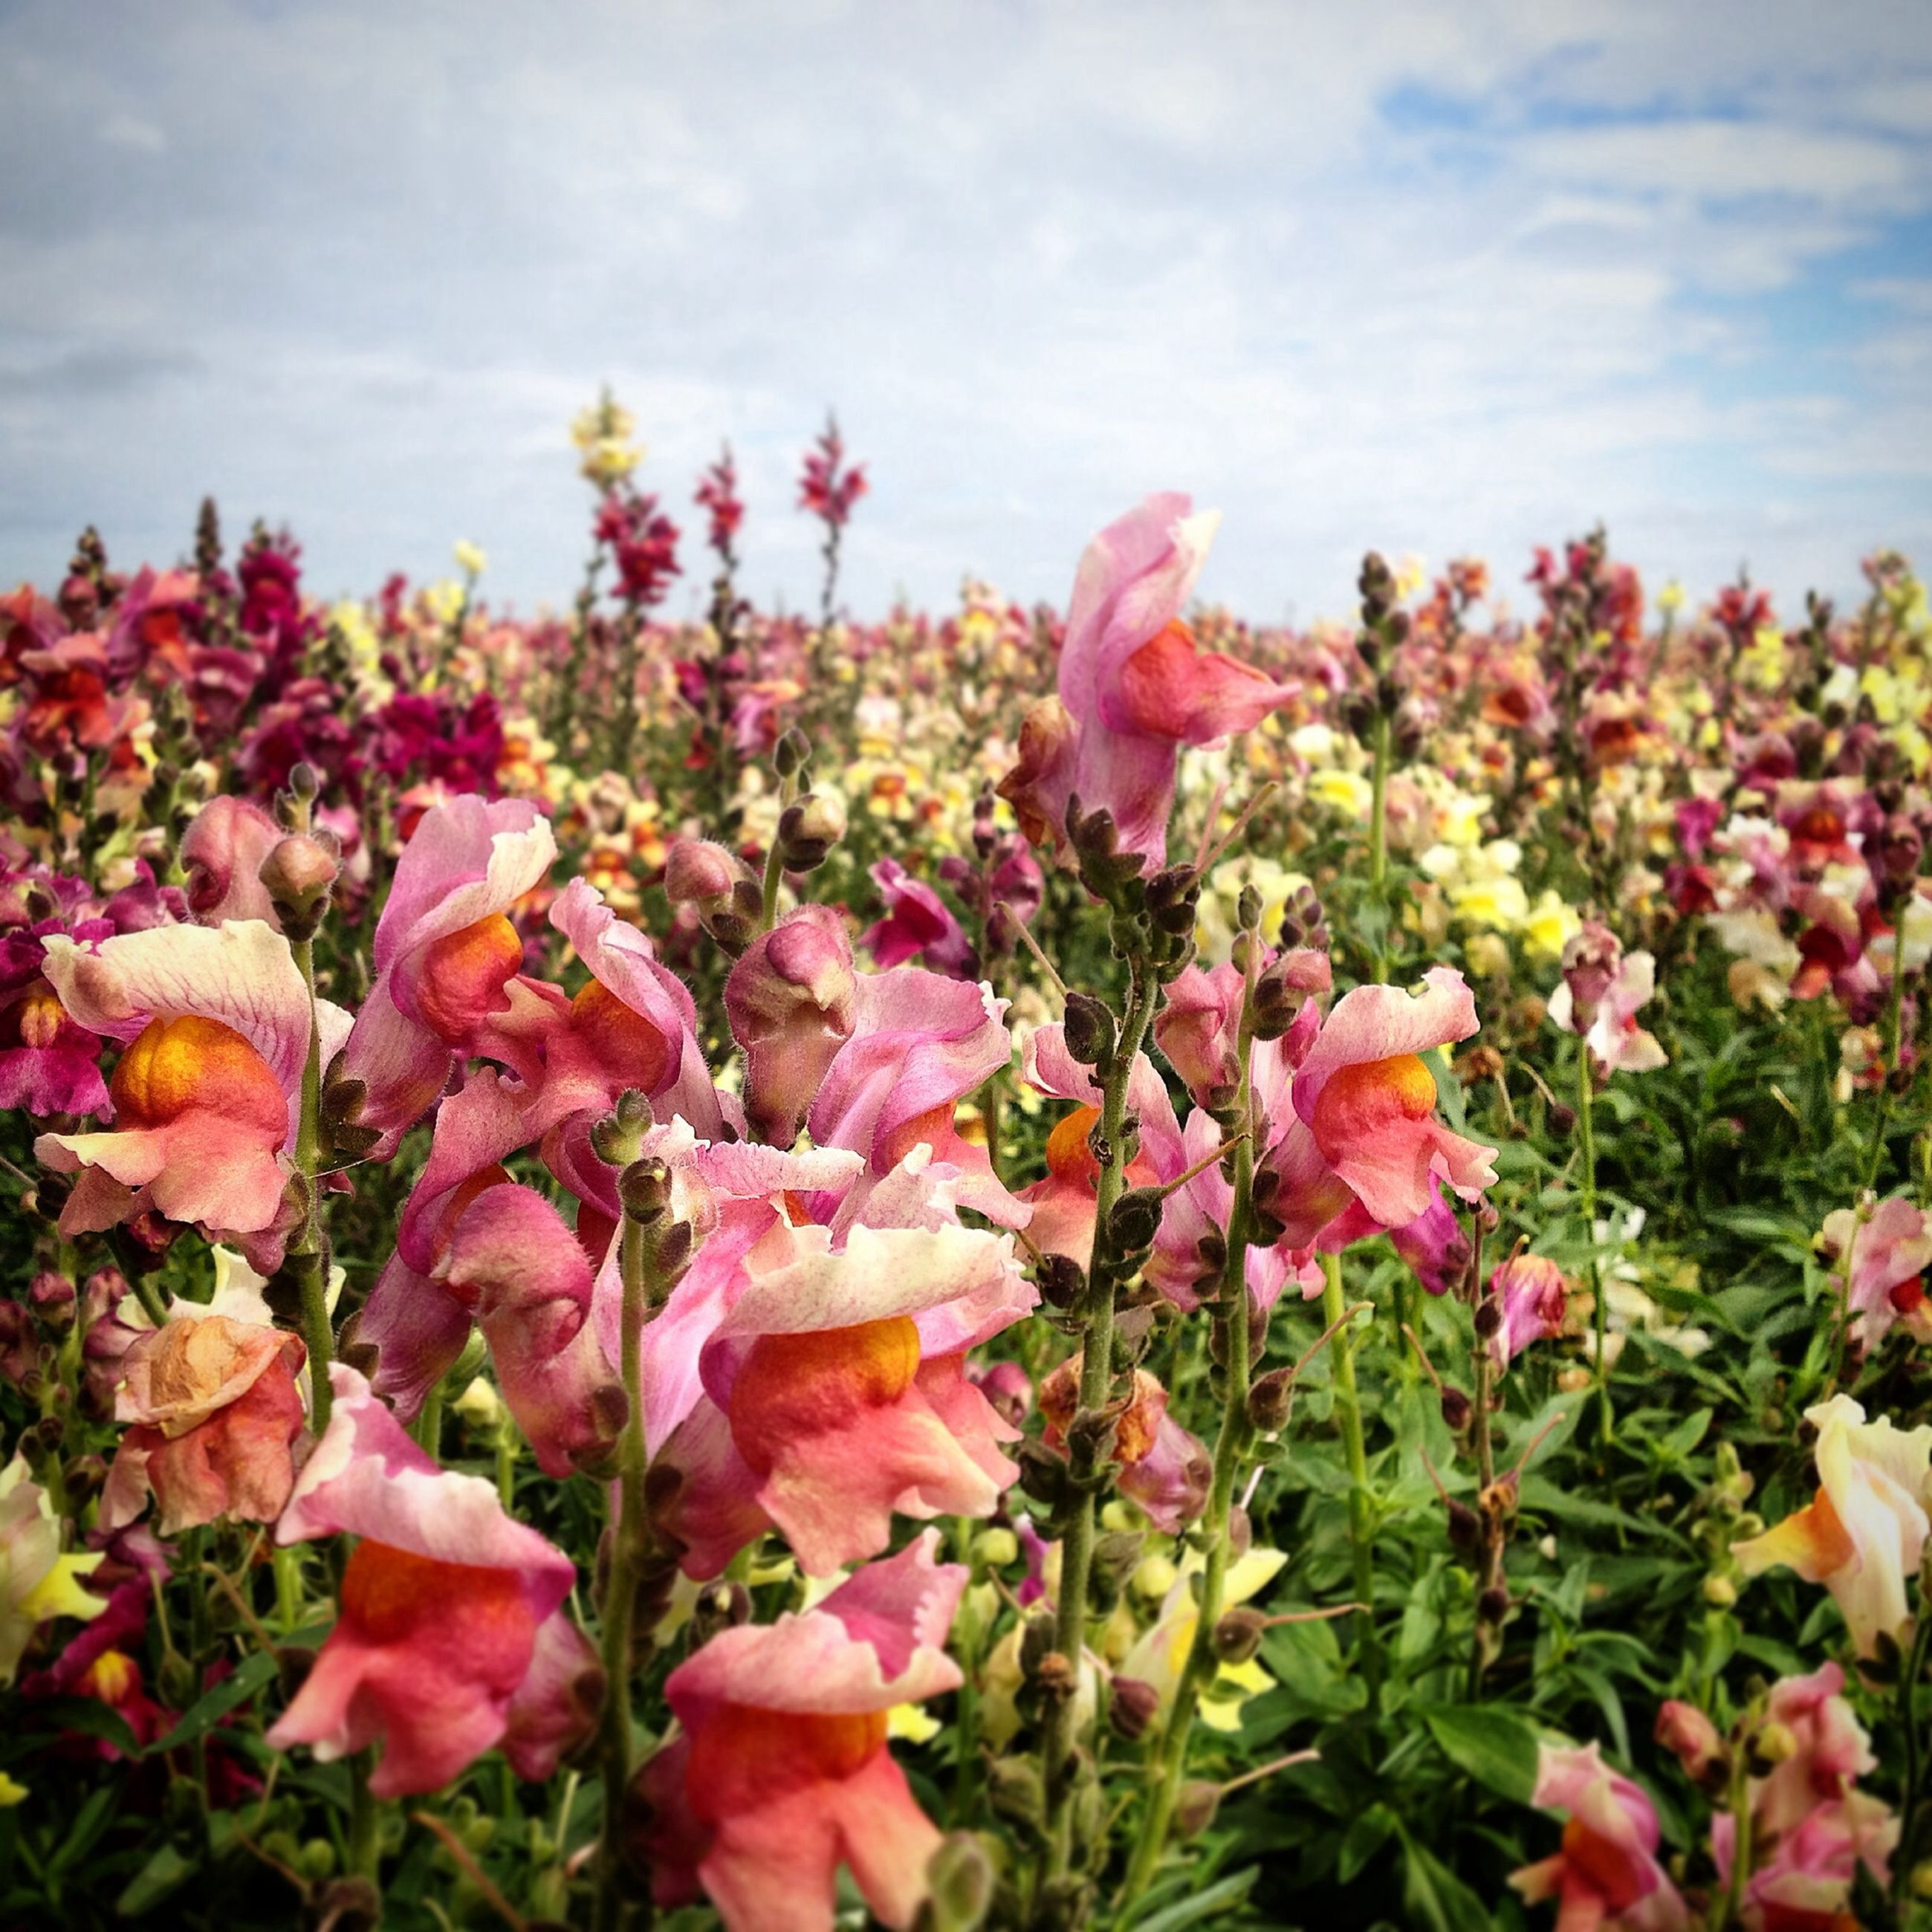 flower, freshness, fragility, petal, beauty in nature, growth, sky, blooming, nature, pink color, flower head, plant, cloud - sky, leaf, in bloom, blossom, field, abundance, springtime, day